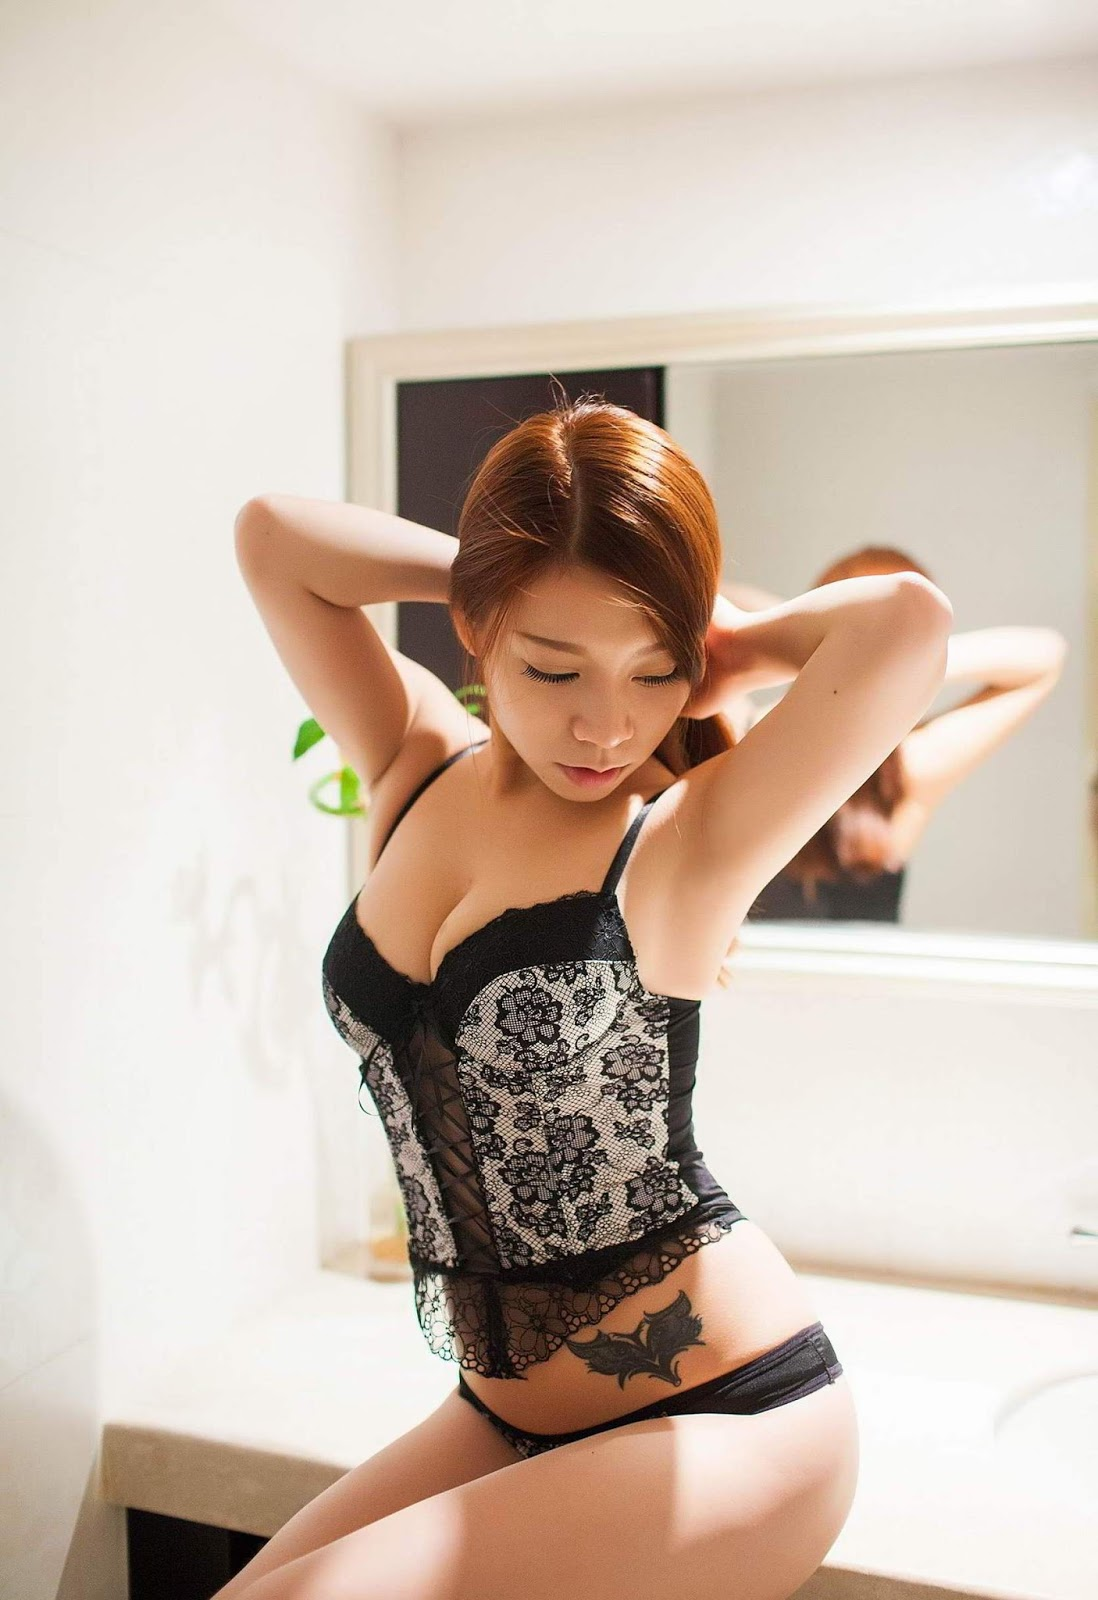 Asian Cute & Excited Body's Model Jia Baobier 嘉宝贝儿 Hot Lingerie Special